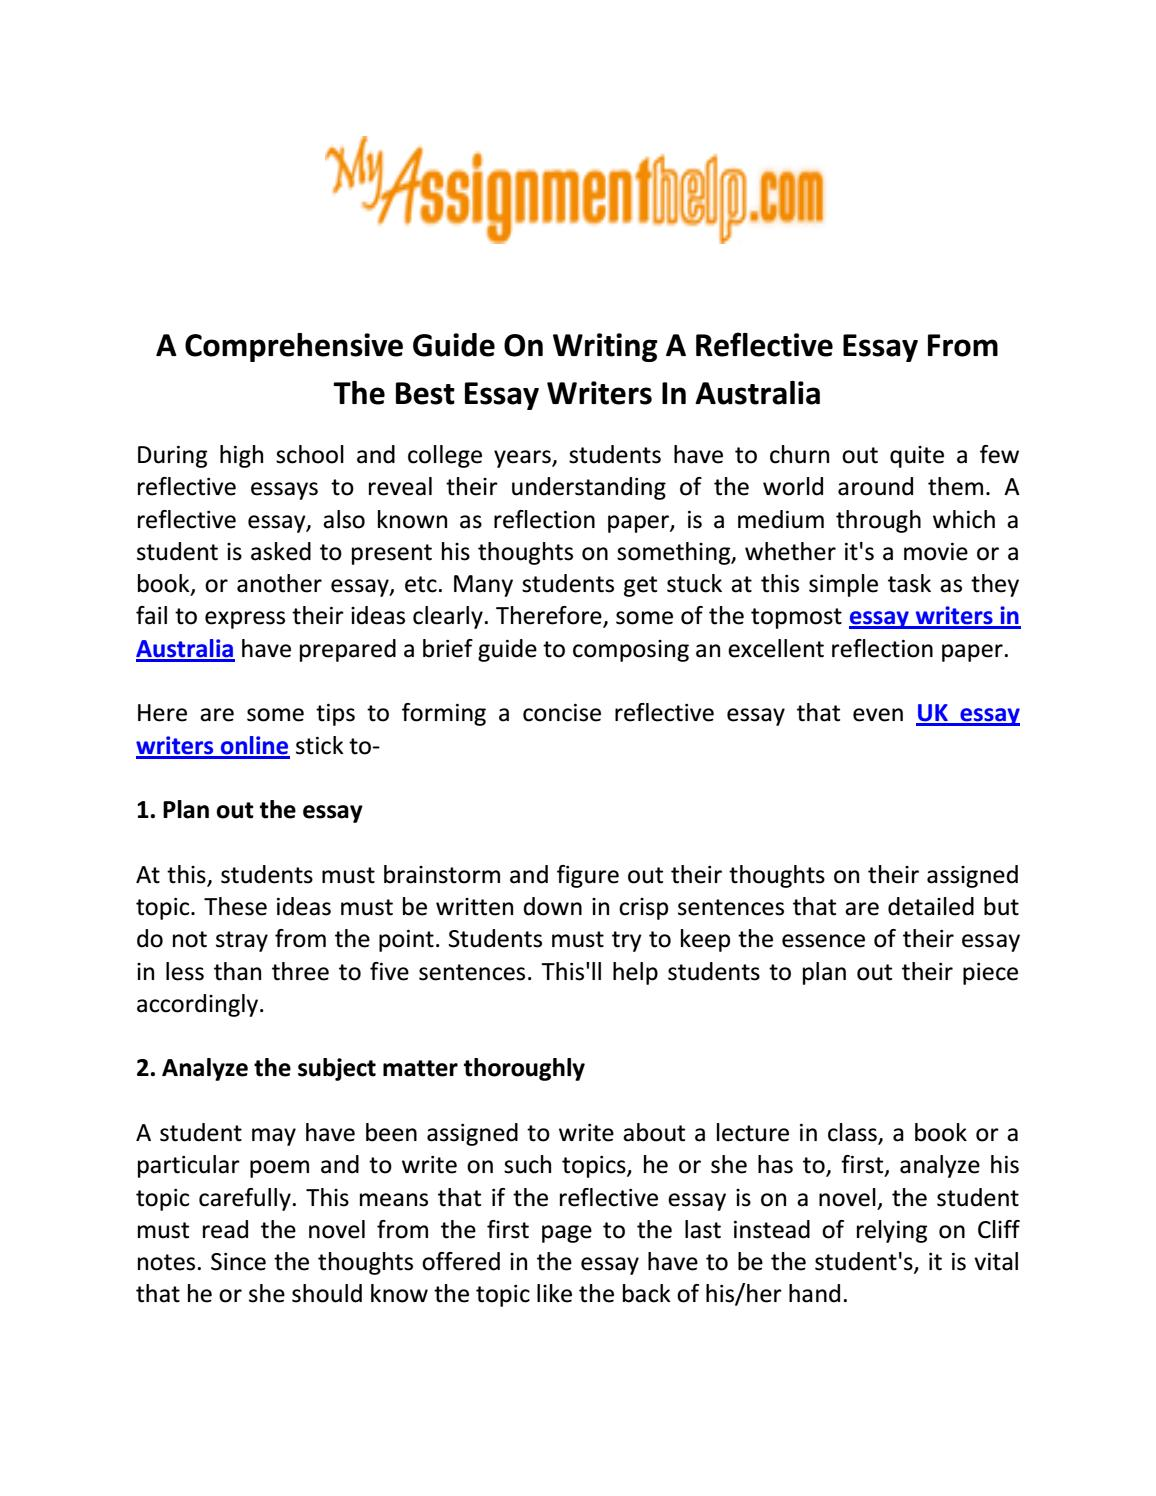 Persuade Essay A Comprehensive Guide On Writing A Reflective Essay From The Best Essay  Writers In Australia By Brody Walker  Issuu Informative And Surprising Essay Topics also Essays About Romeo And Juliet A Comprehensive Guide On Writing A Reflective Essay From The Best  Merchant Of Venice Essay